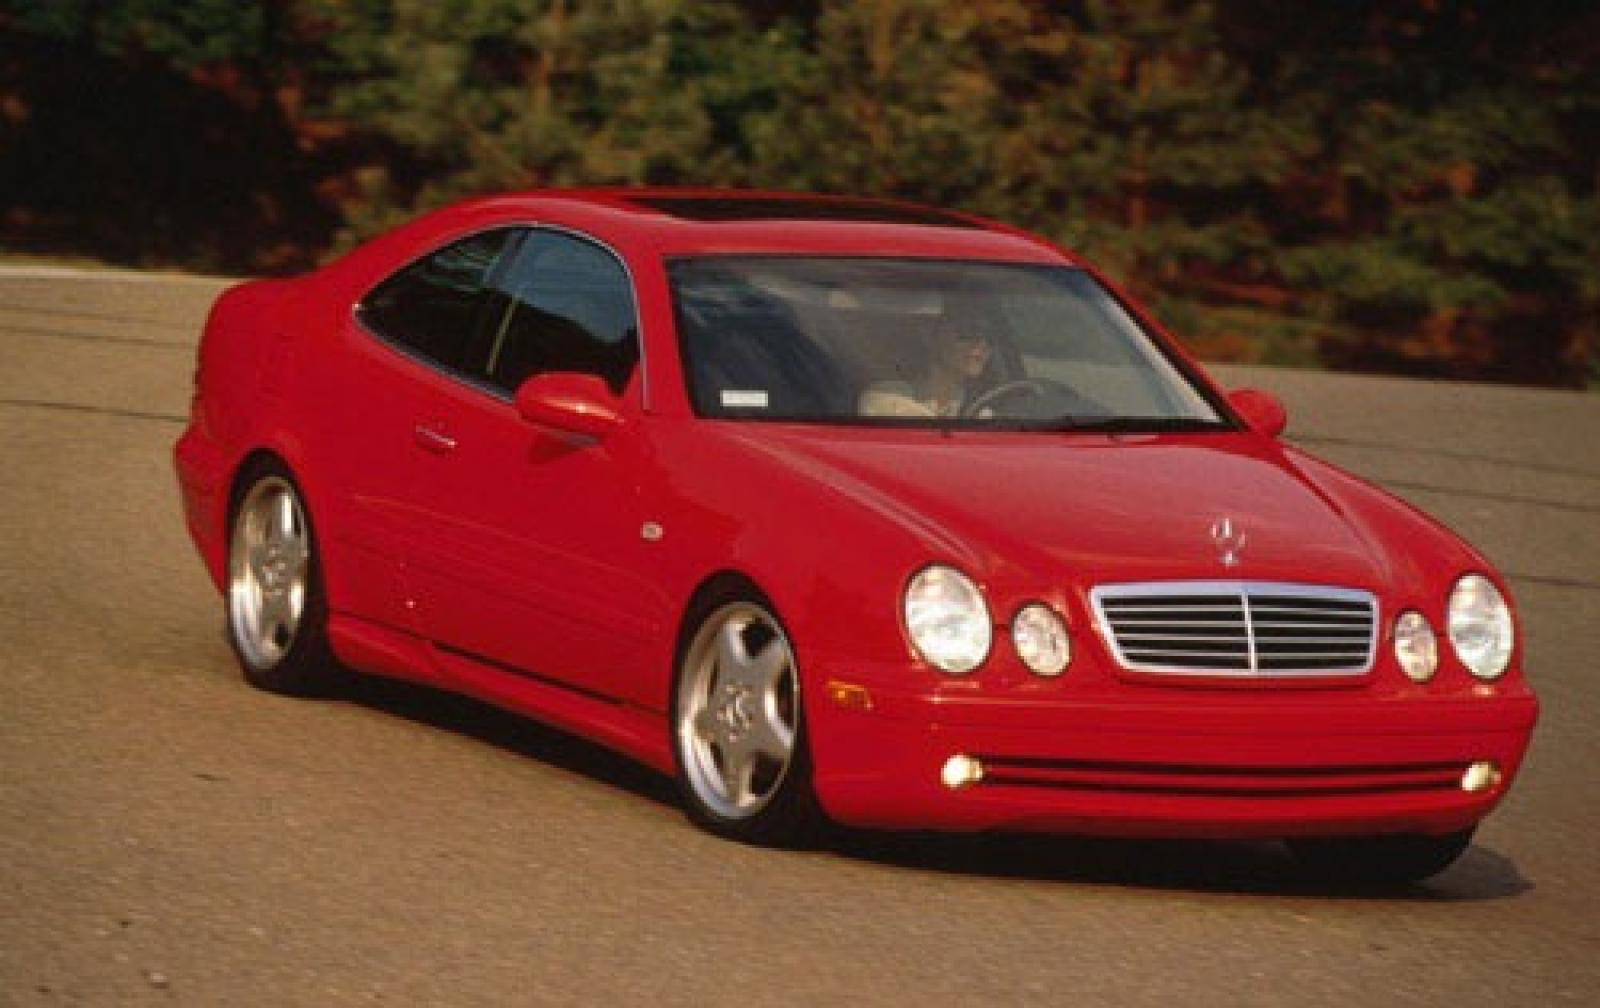 1999 mercedes benz clk class information and photos for 1999 mercedes benz clk class coupe